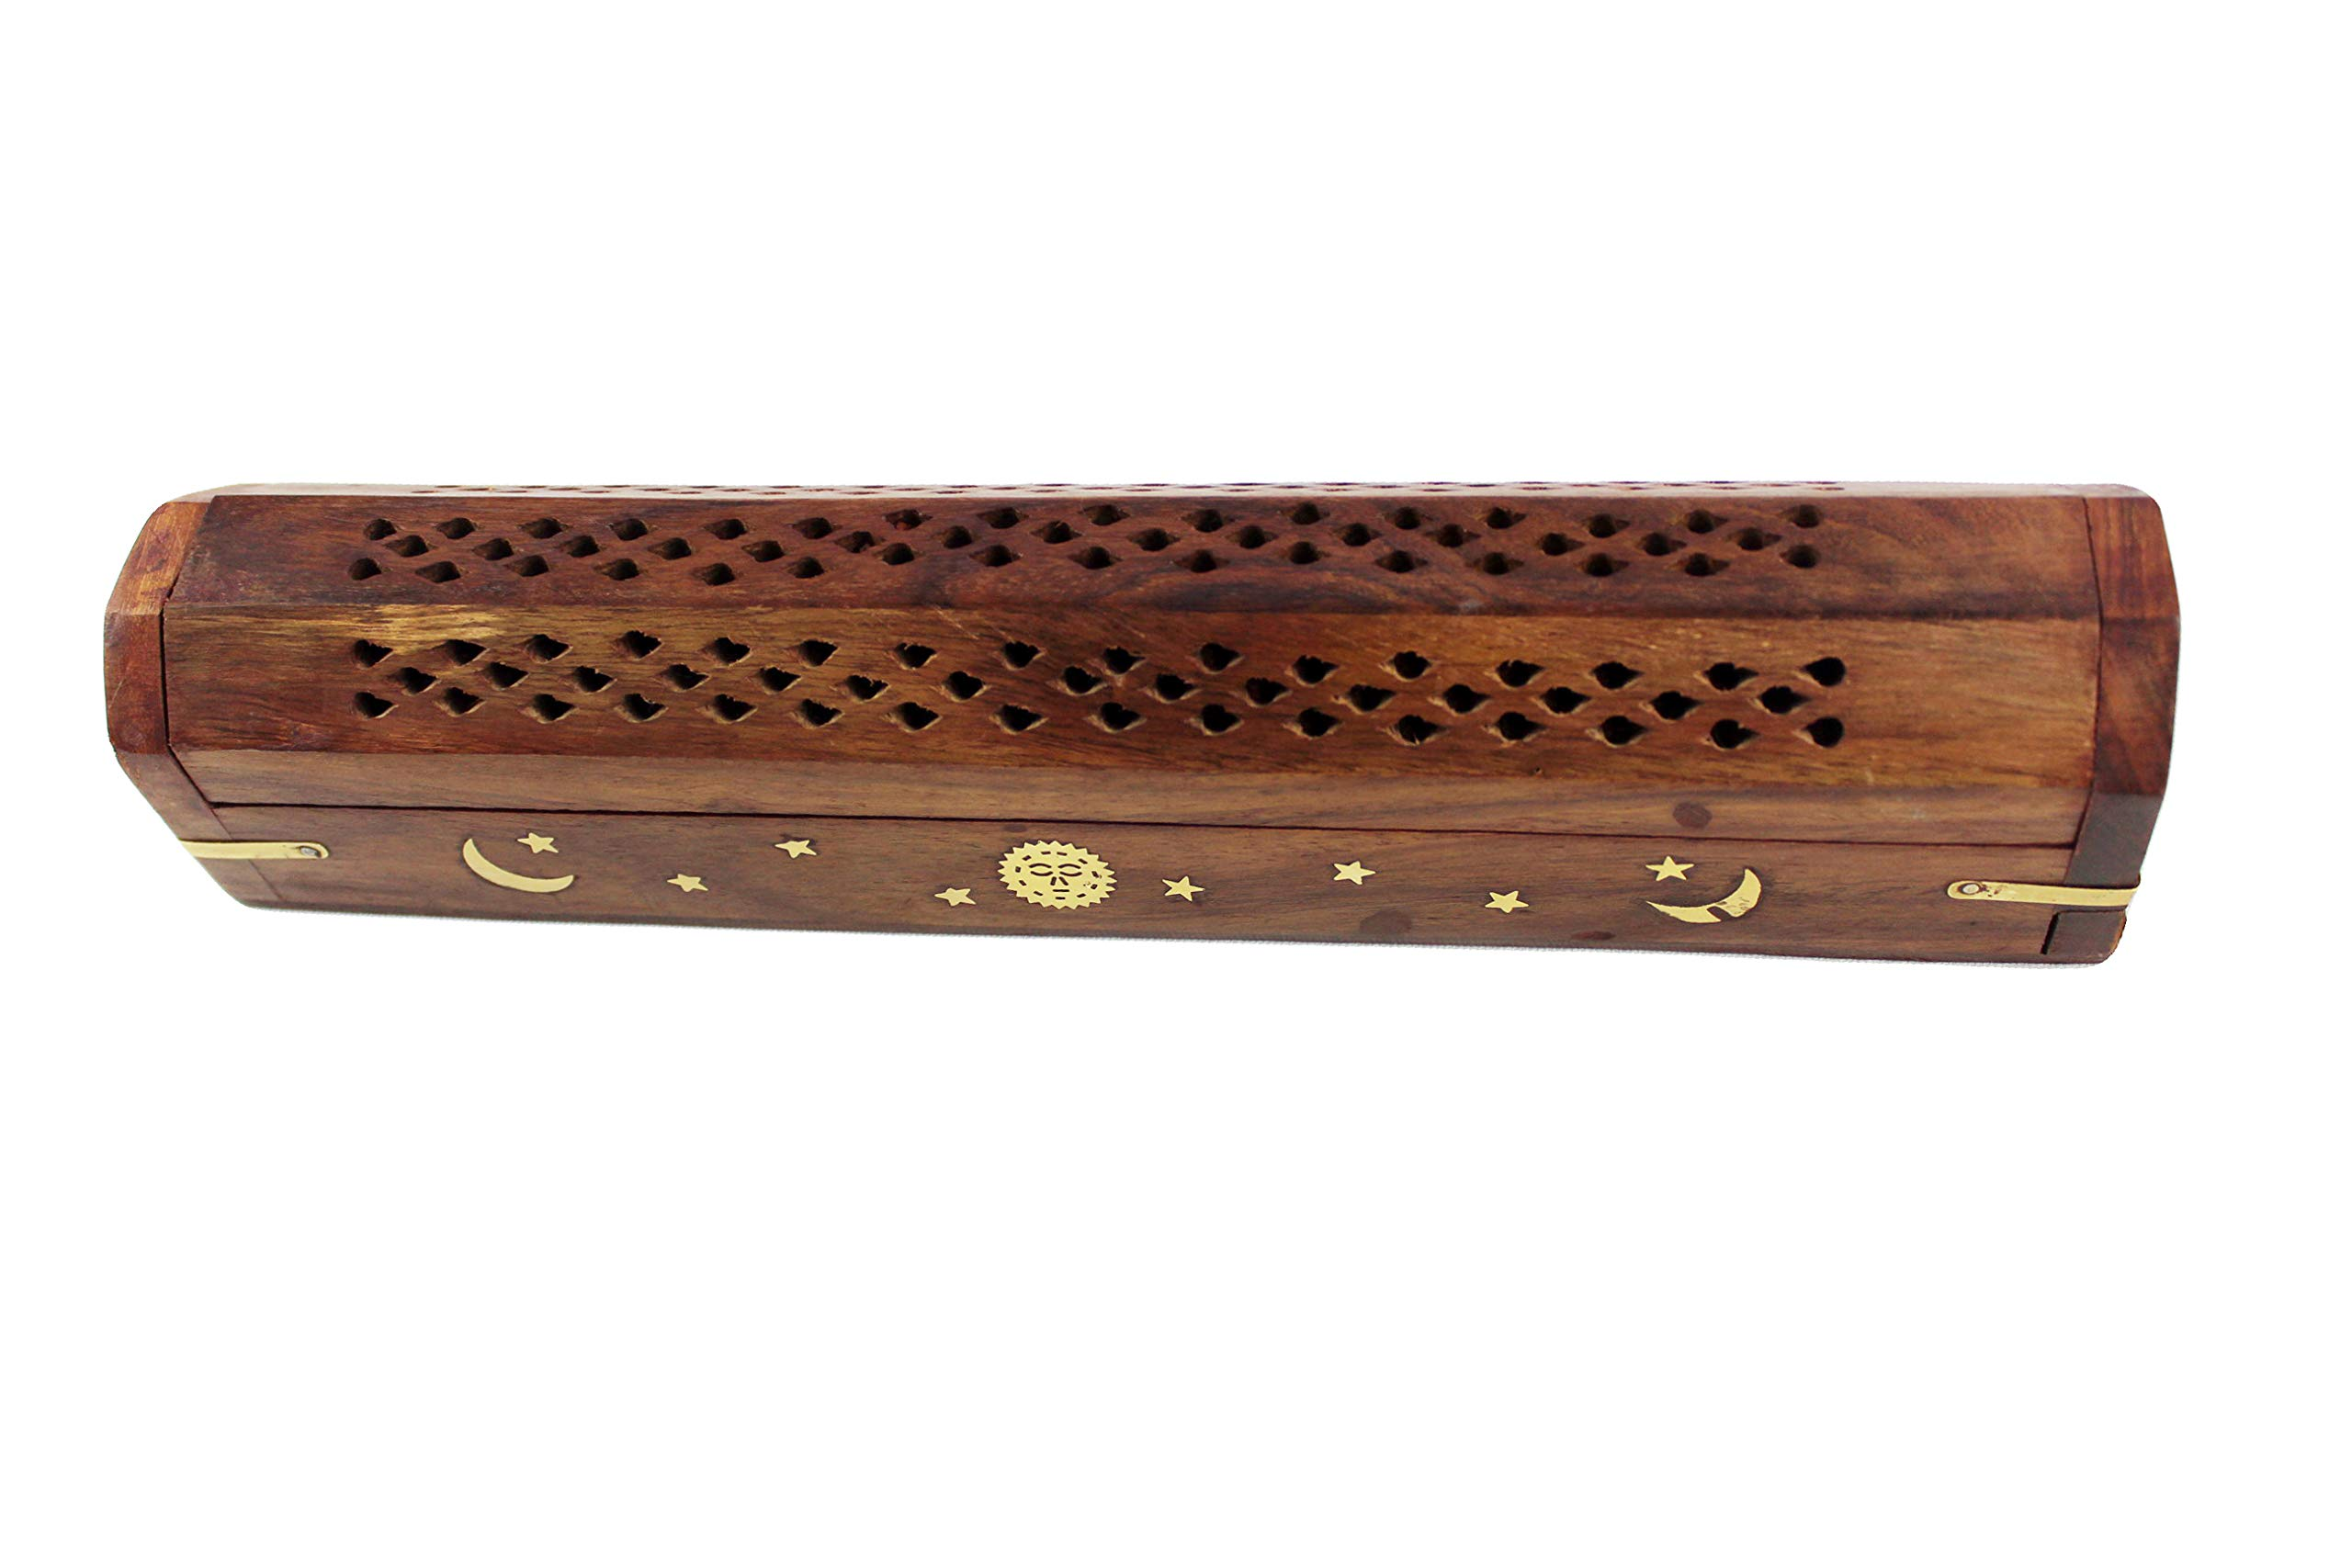 Cotton Craft - 2 Pack - Coffin Style Wood Incense Burner Holder with Sun and Moon Inlays - Handmade from Sheesham Wood and Brass Inlays - Size 12x2x2 by Cotton Craft (Image #4)